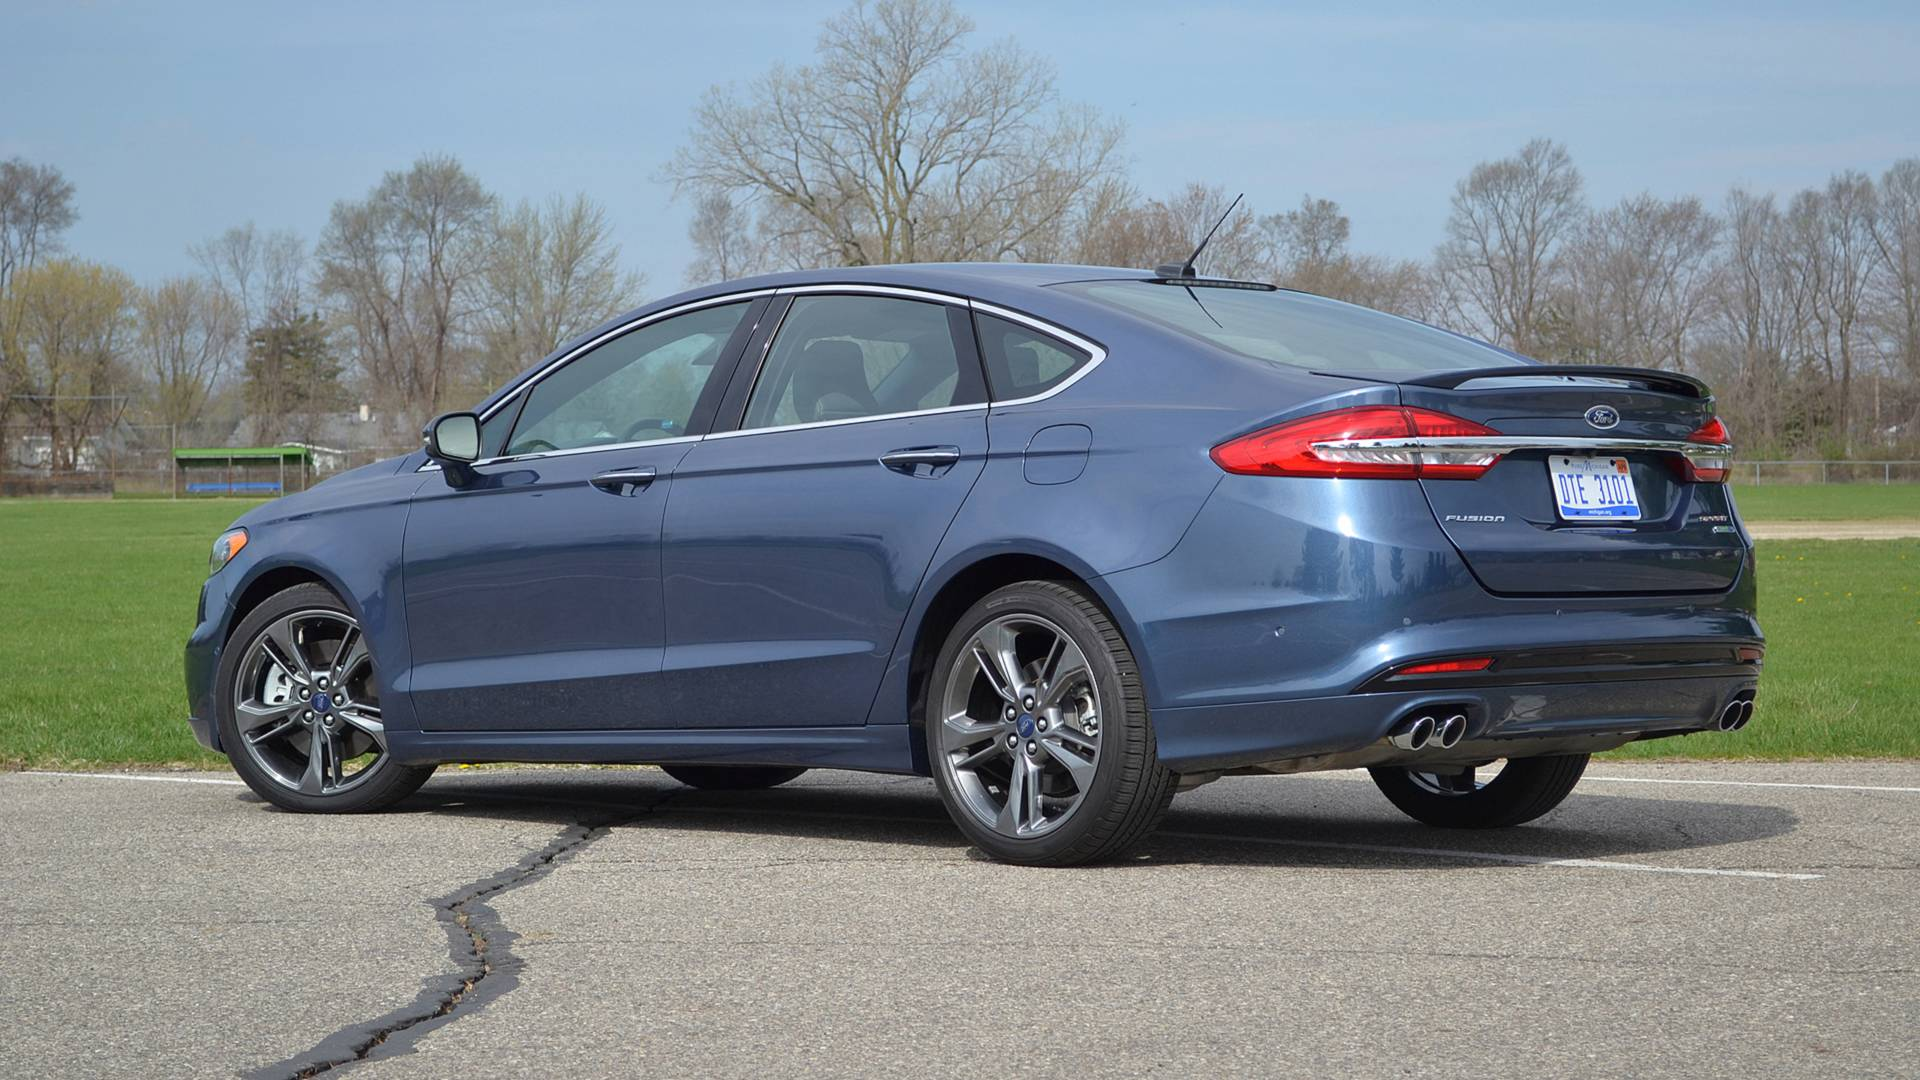 Ford Fusion Won't Die Until At Least After The 2020 Model Year